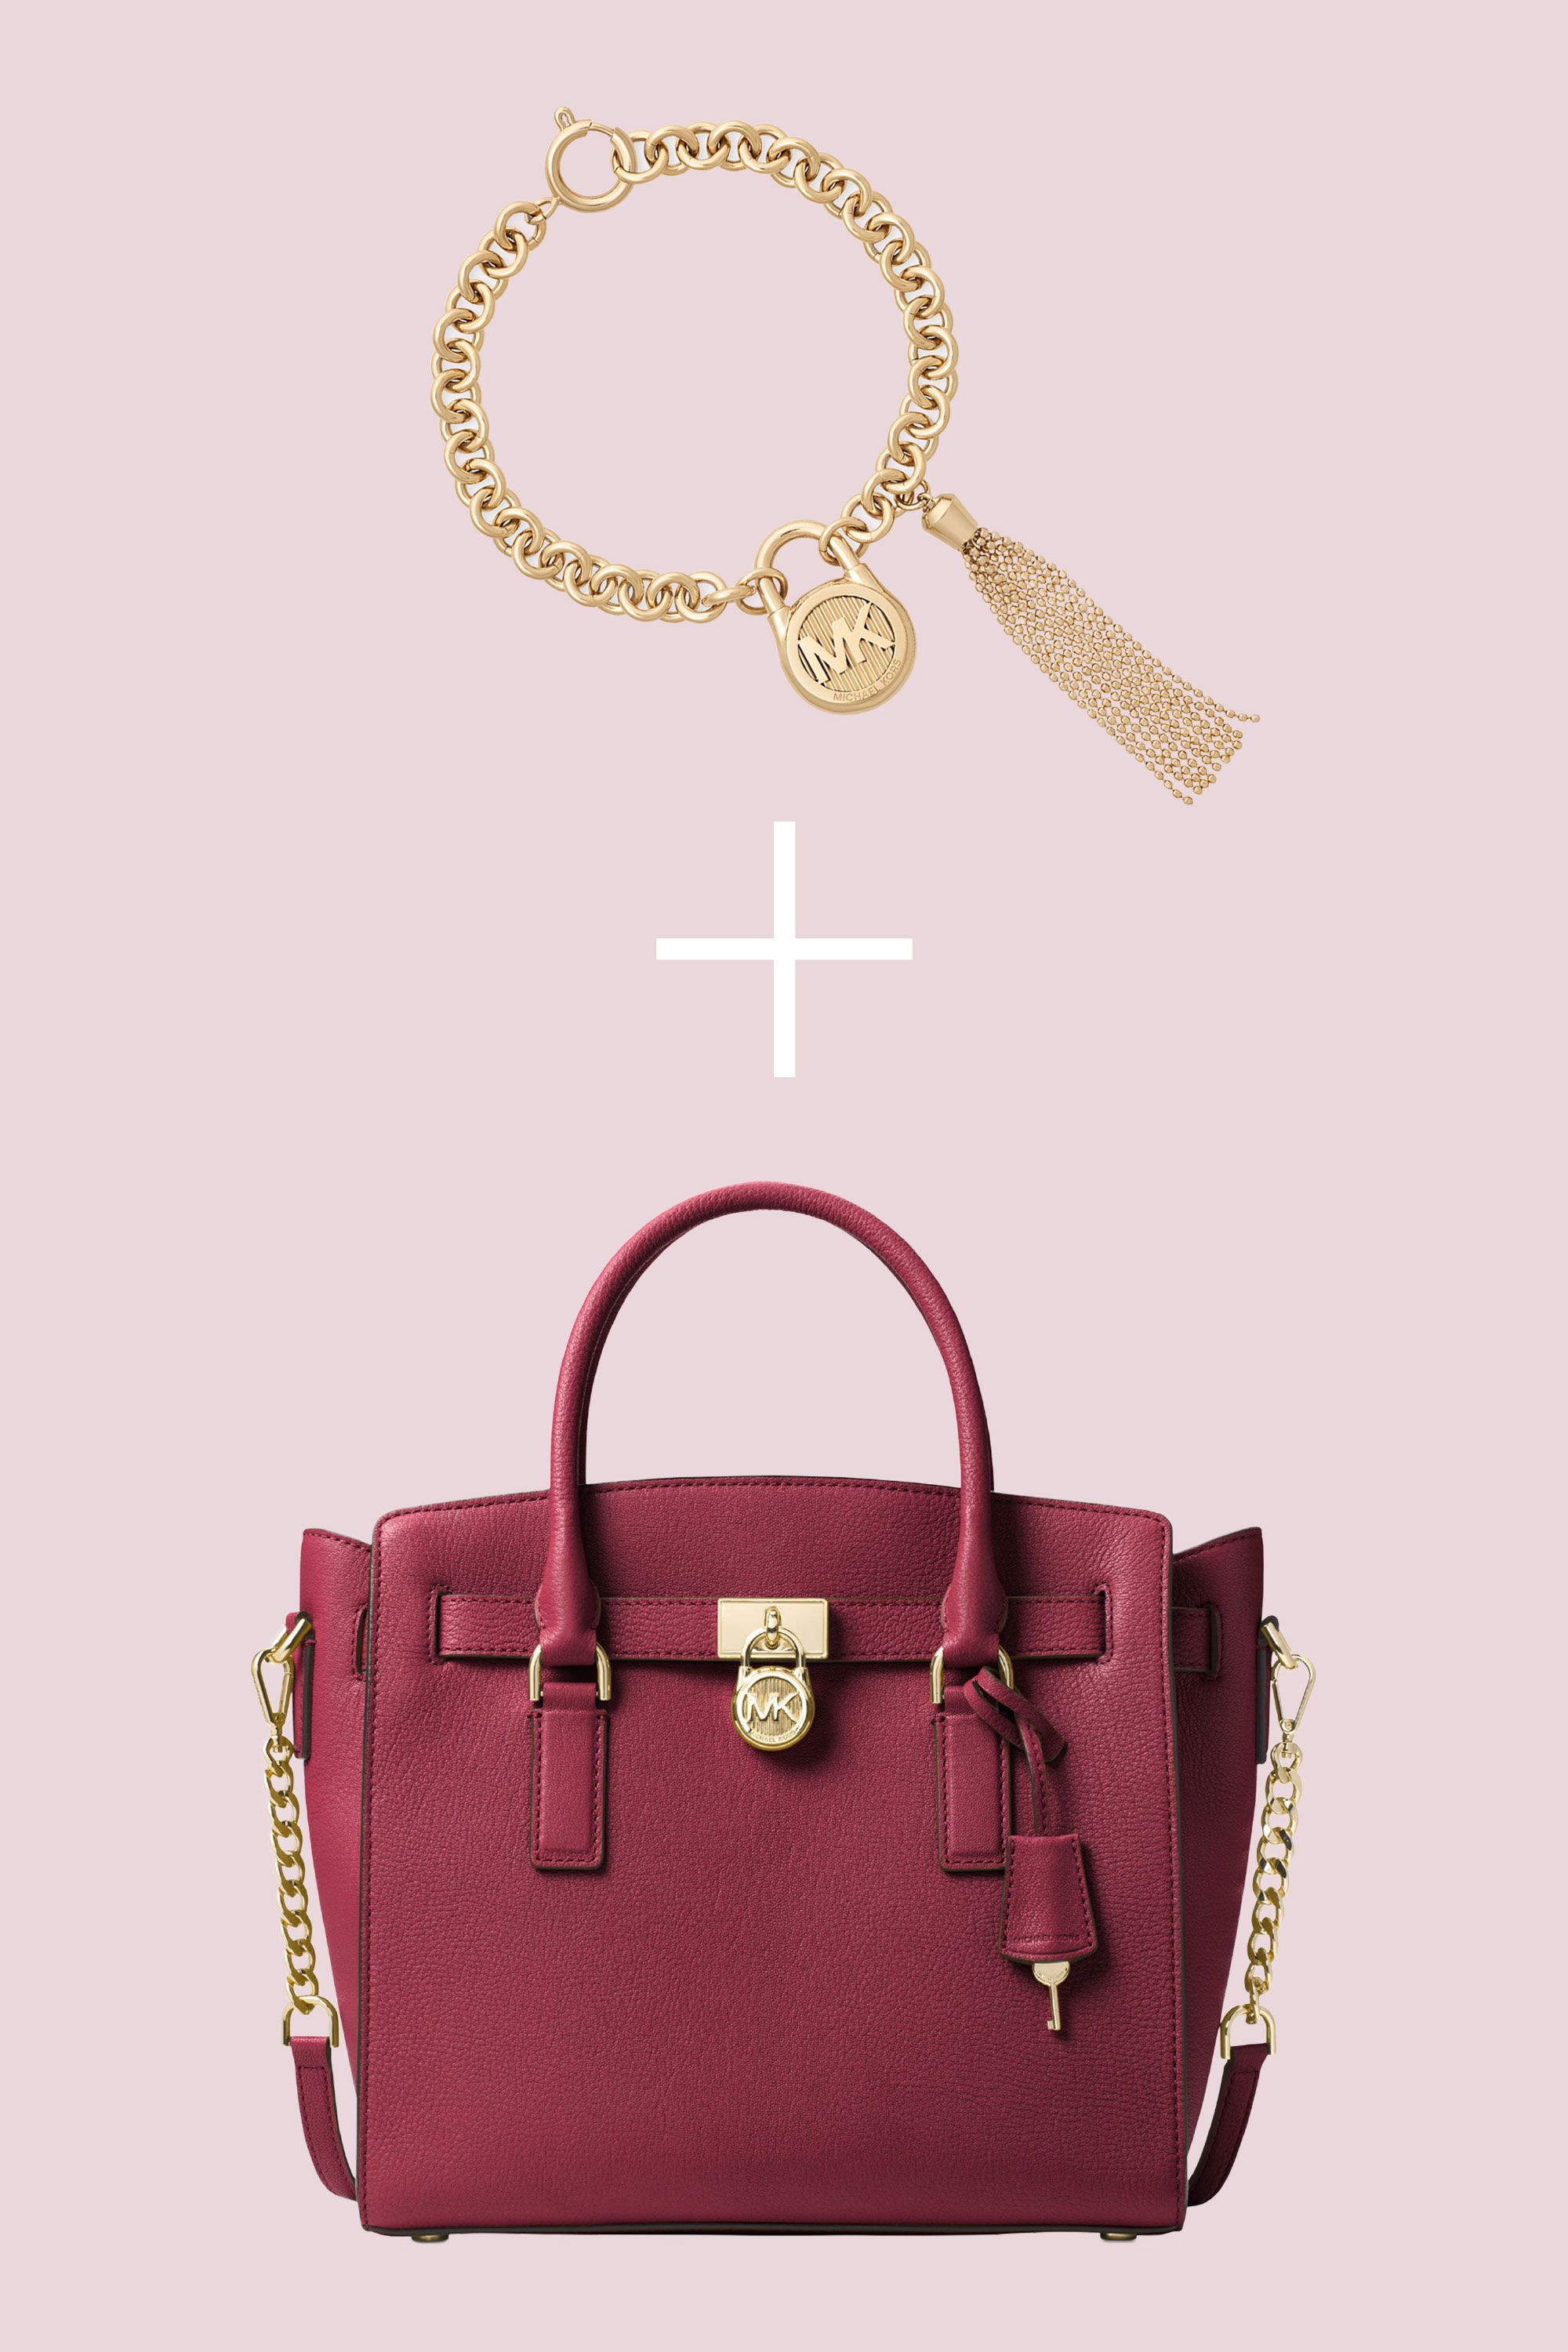 """<p>Bold accessories are the key to making every outfit a knock-out—just be sure to choose pieces that won't compete with one another. The scale of a gold-tone bracelet with a pretty tassel complements the size of a large carryall perfectly. </p><p><strong data-redactor-tag=""""strong"""">BUY IT: </strong><span class=""""redactor-invisible-space"""" data-verified=""""redactor"""" data-redactor-tag=""""span"""" data-redactor-class=""""redactor-invisible-space"""">Michael Kors bracelet, $95; <a href=""""https://www.macys.com/shop/product/michael-kors-logo-padlock-chain-tassel-link-bracelet?ID=4847070&CategoryID=55285&cm_mmc=carat_dis-_-sep2_nopro_auth_rtw_ffash_tentpole_display_w7080033_11696-_-1339154-_-09052017_10052017"""" target=""""_blank"""" data-tracking-id=""""recirc-text-link"""">macys.com</a>. MICHAEL Michael Kors satchel, $298; <a href=""""https://www.macys.com/shop/product/michael-michael-kors-studio-hamilton-large-east-west-satchel?ID=4338158&cm_mmc=carat_dis-_-sep2_nopro_auth_rtw_ffash_tentpole_display_w7080033_11696-_-1339154-_-09052017_10052017"""" target=""""_blank"""" data-tracking-id=""""recirc-text-link"""">macys.com</a></span><br></p>"""